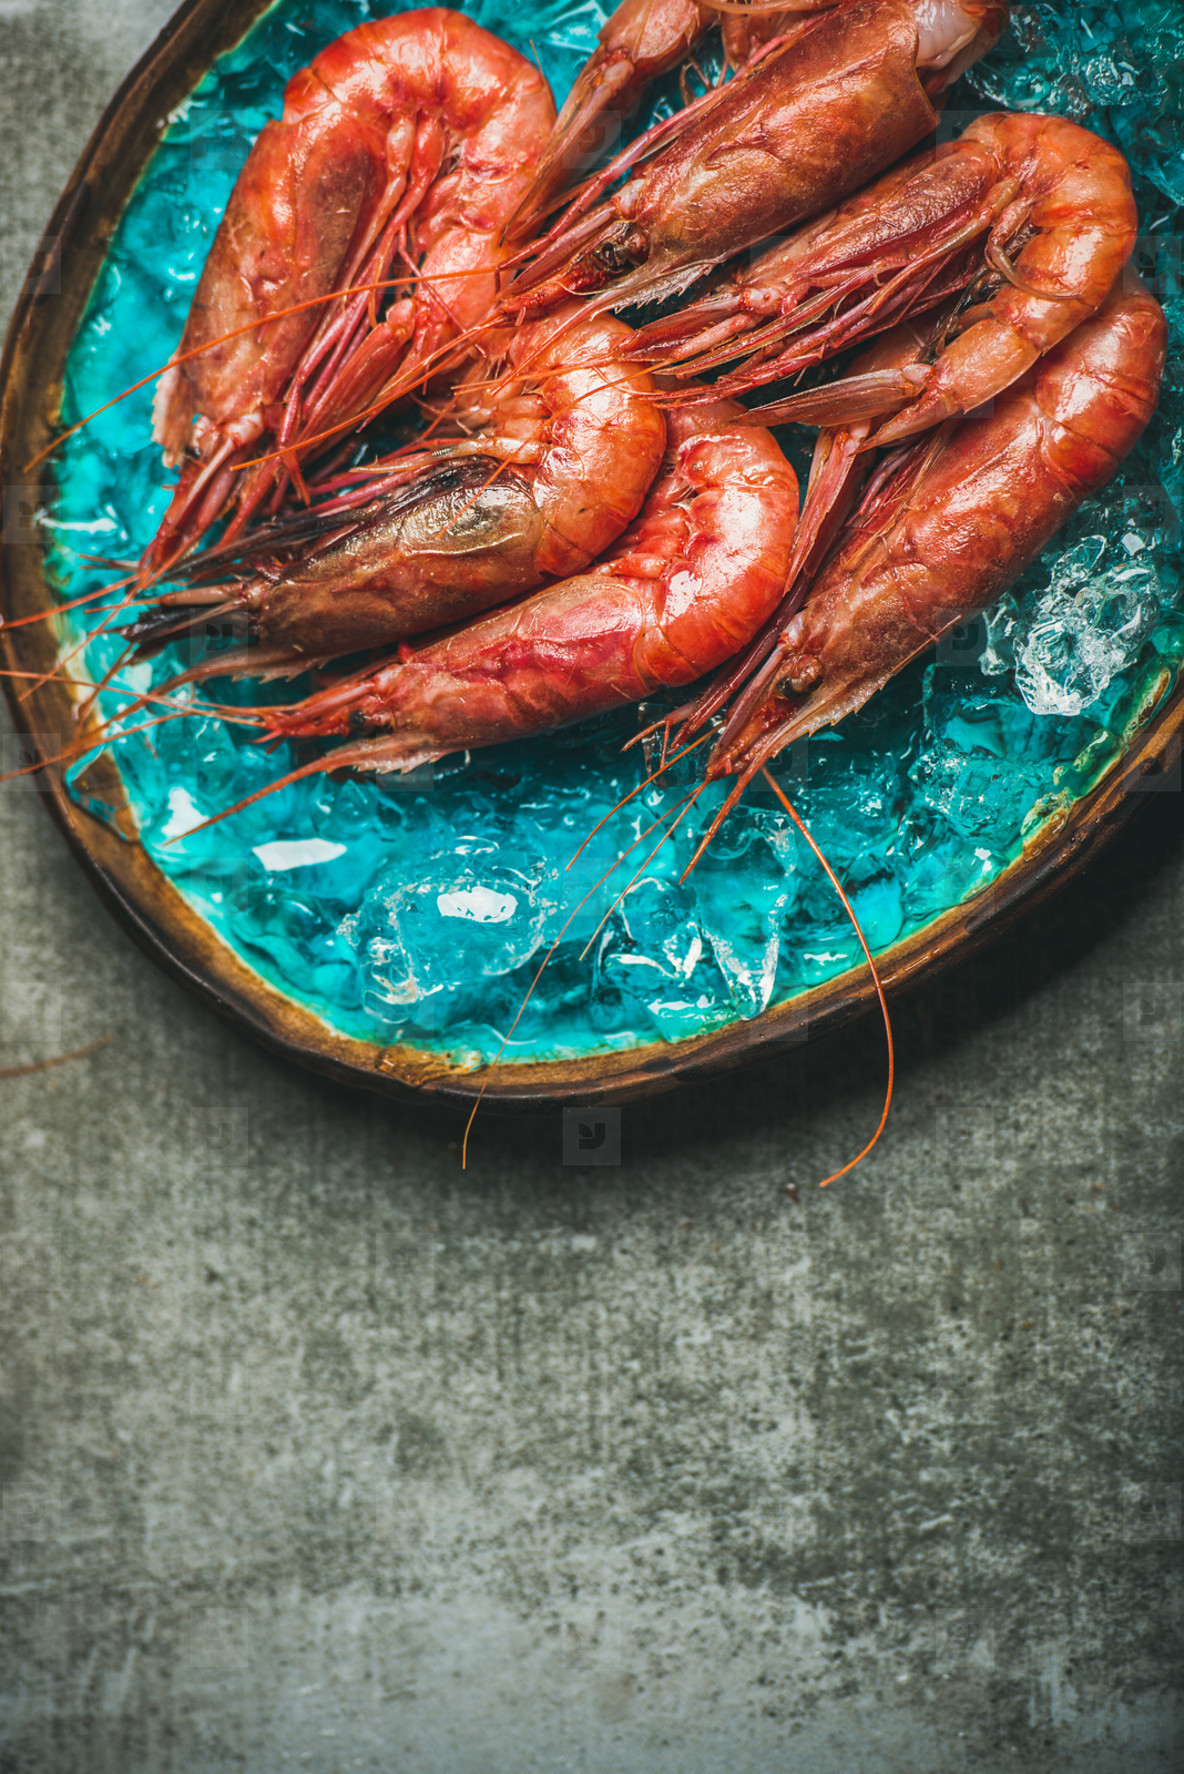 Raw uncooked red shrimps on ice  grey concrete background